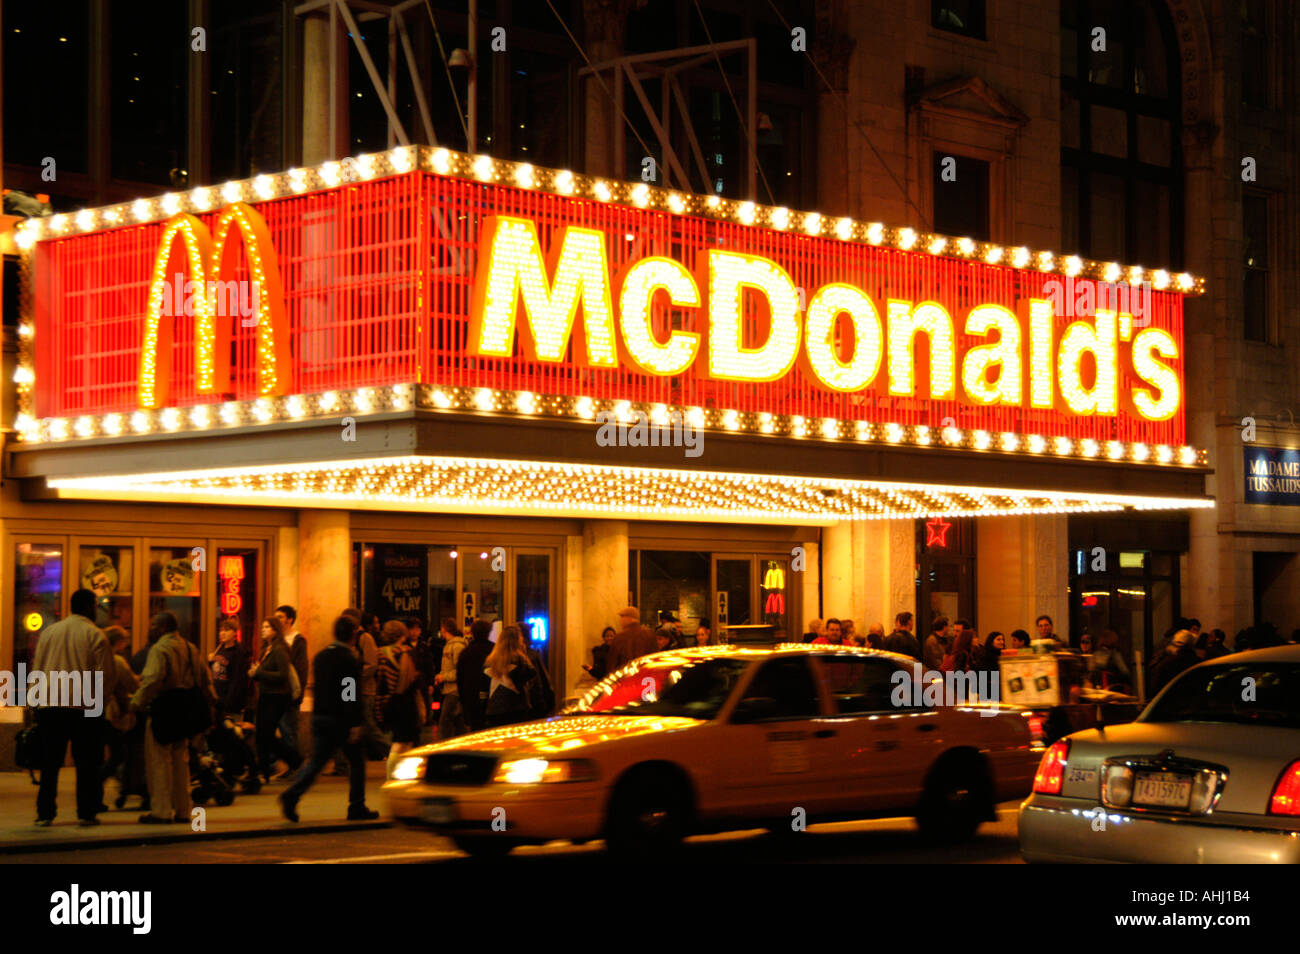 Mcdonald 39 s restaurant in times square manhattan new york for American cuisine in nyc